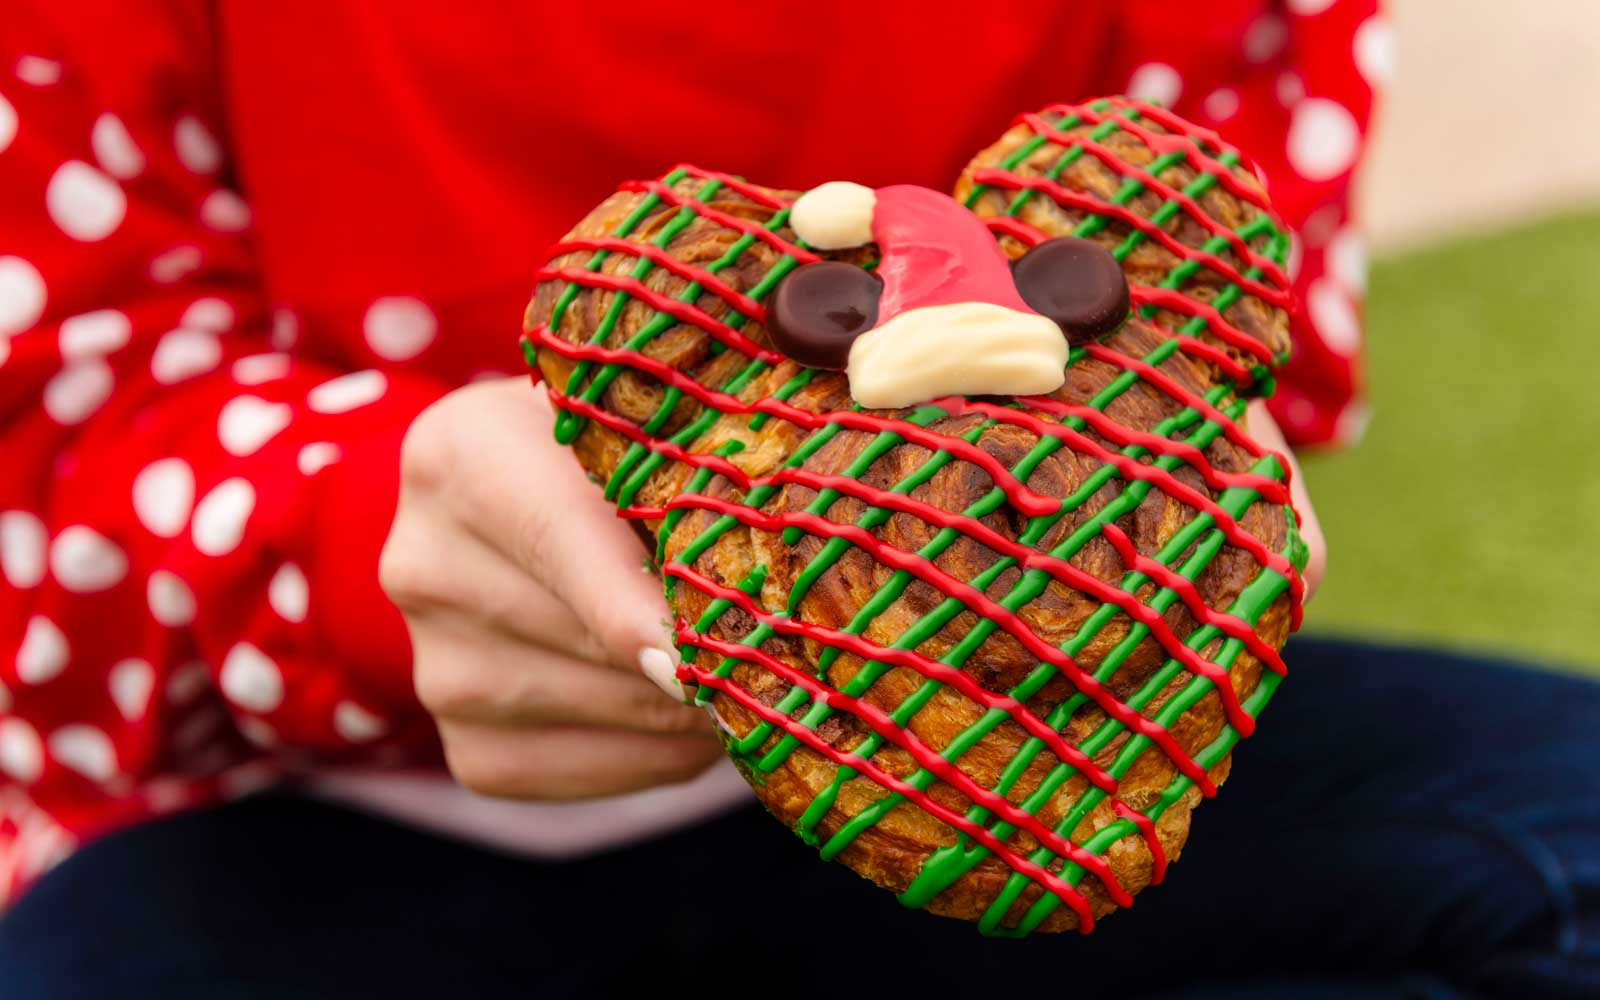 Mickey Mouse shaped Christmas baked goods at Disney